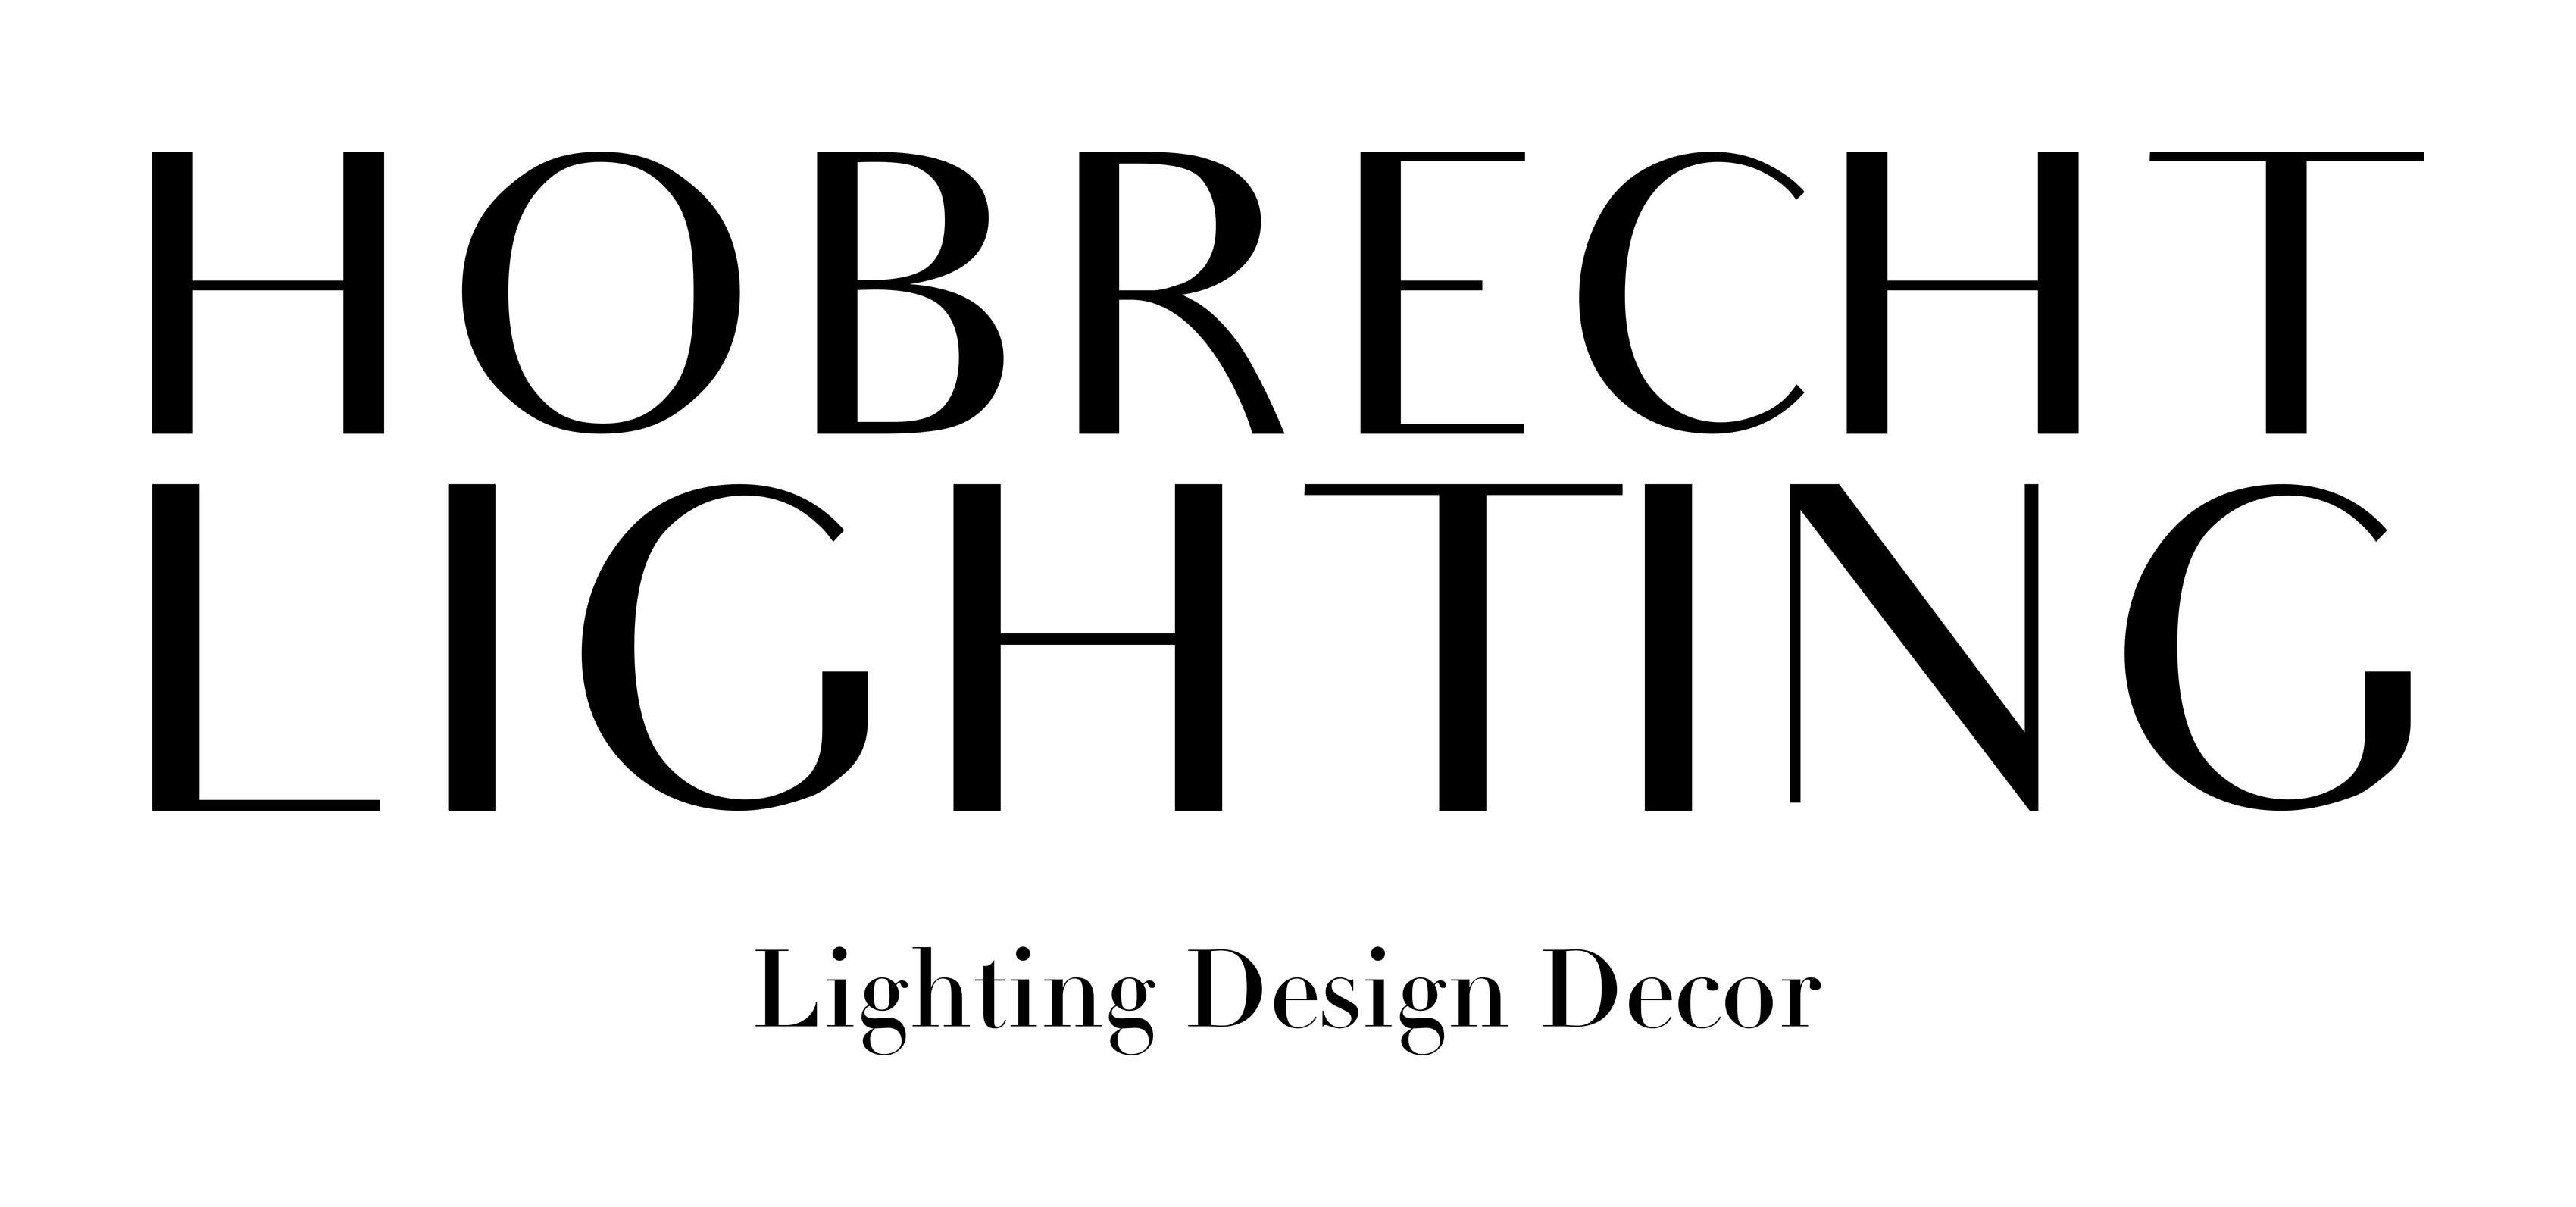 Hobrecht Lighting